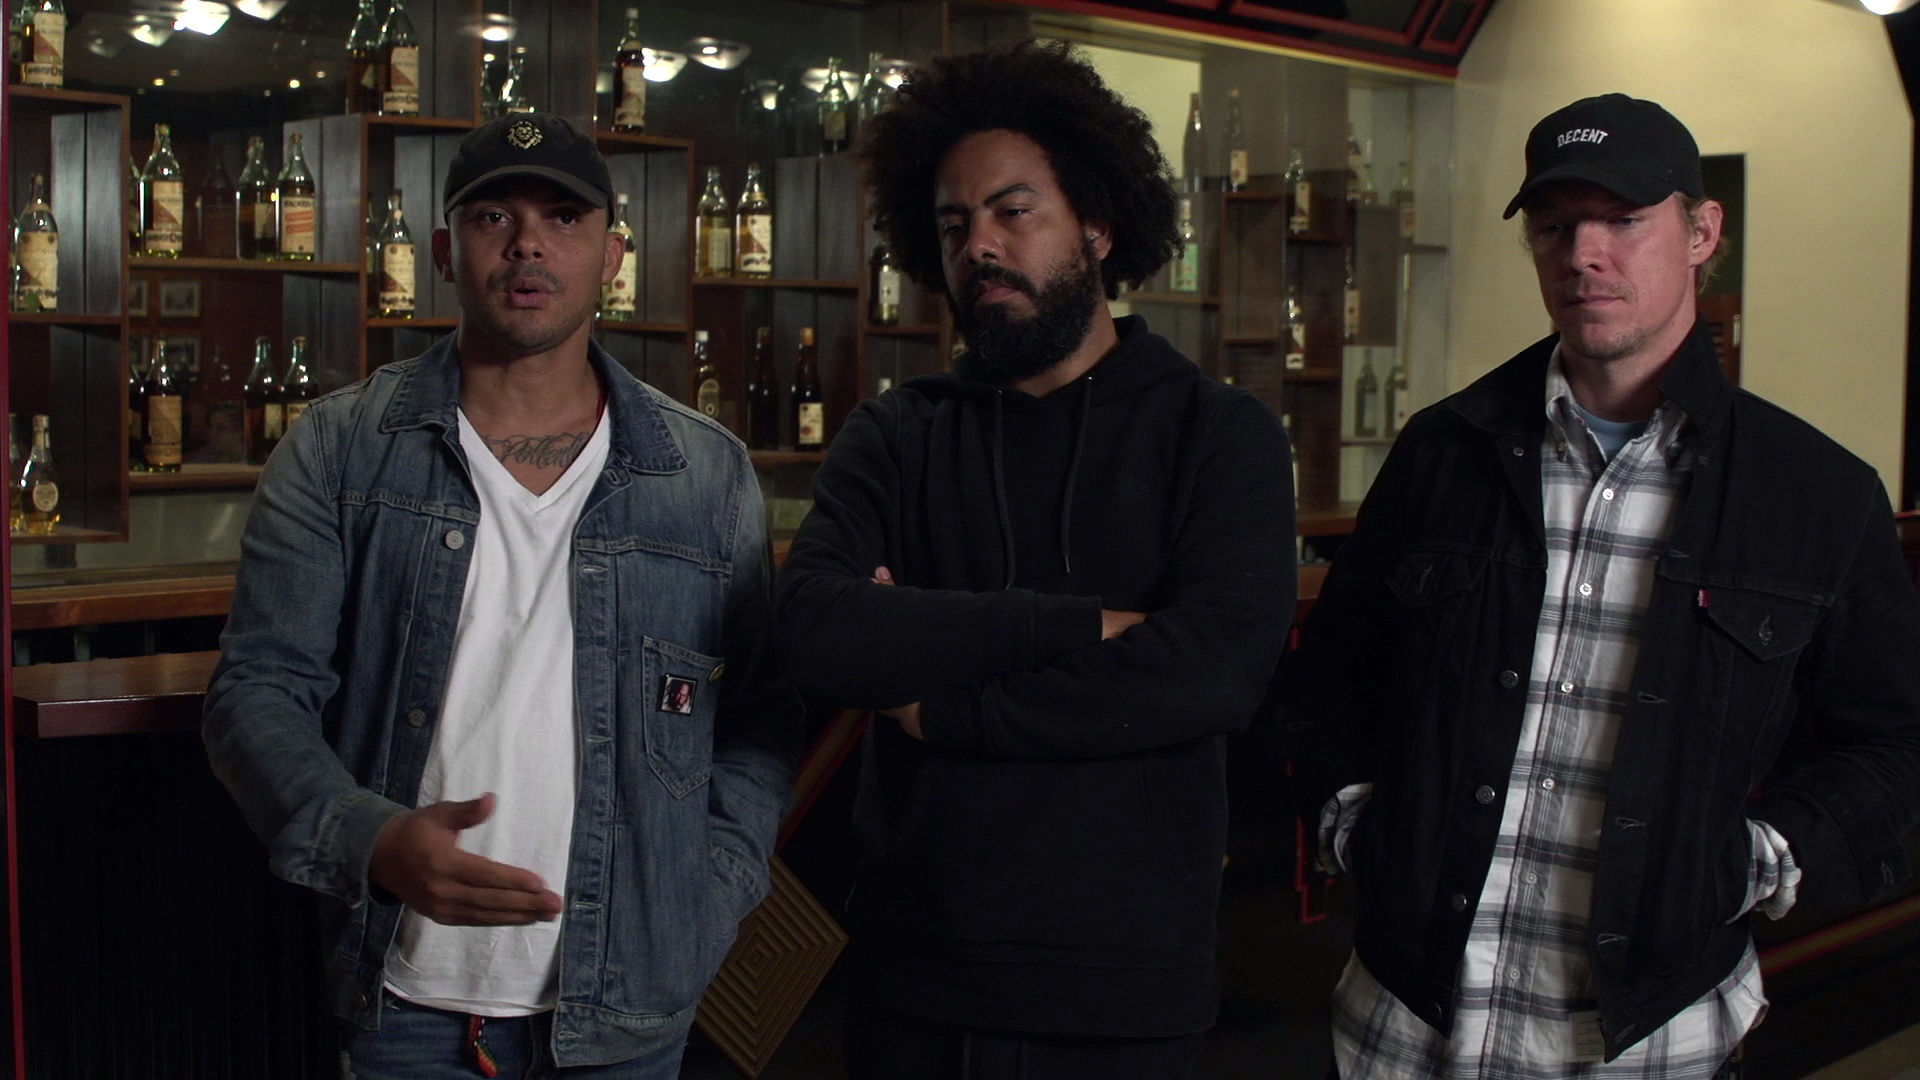 Major Lazer talk about projects and collaborations in 2017 [Video]